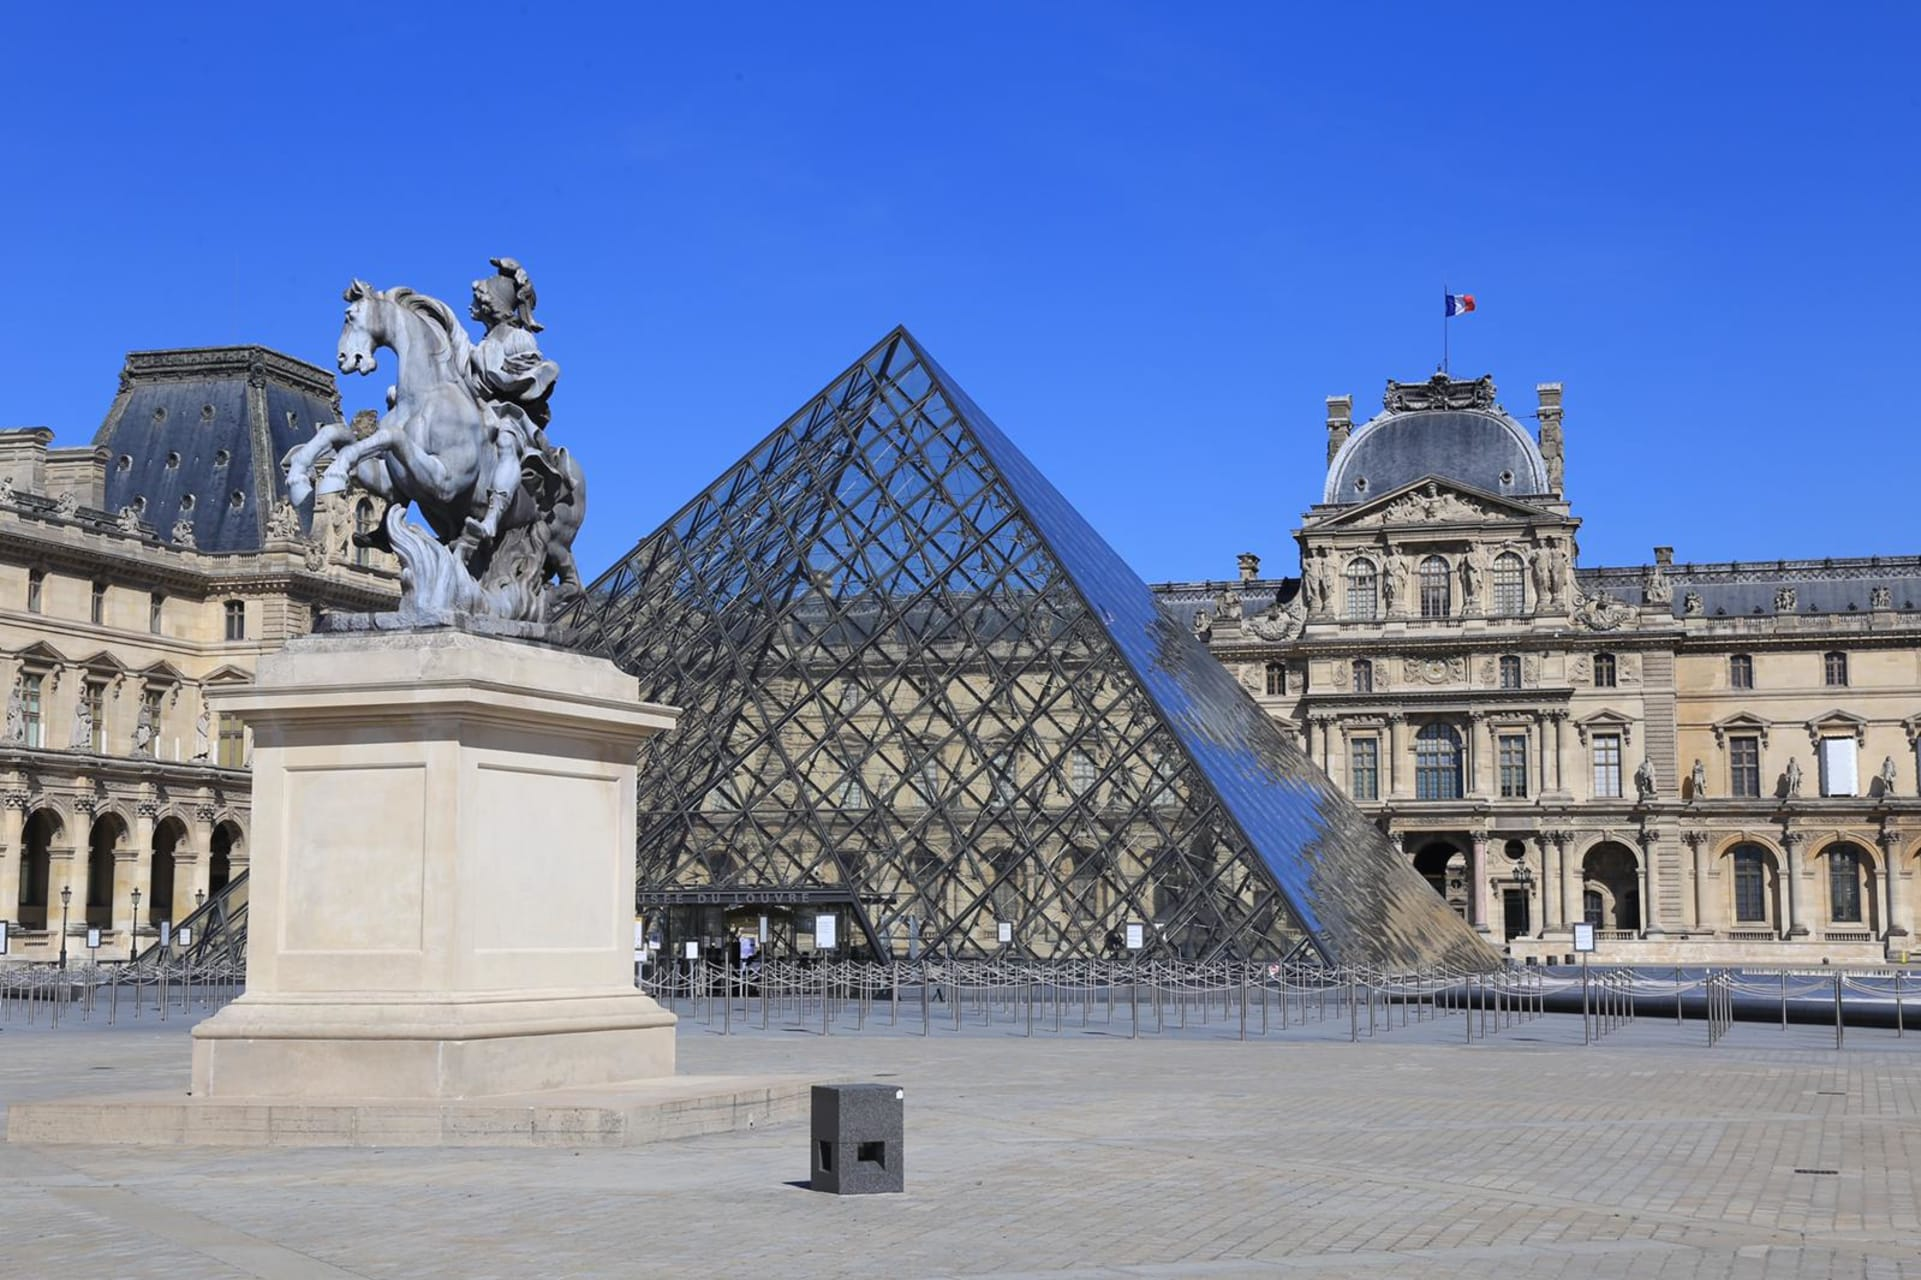 Paris - The Louvre - Fortress and Royal Palace